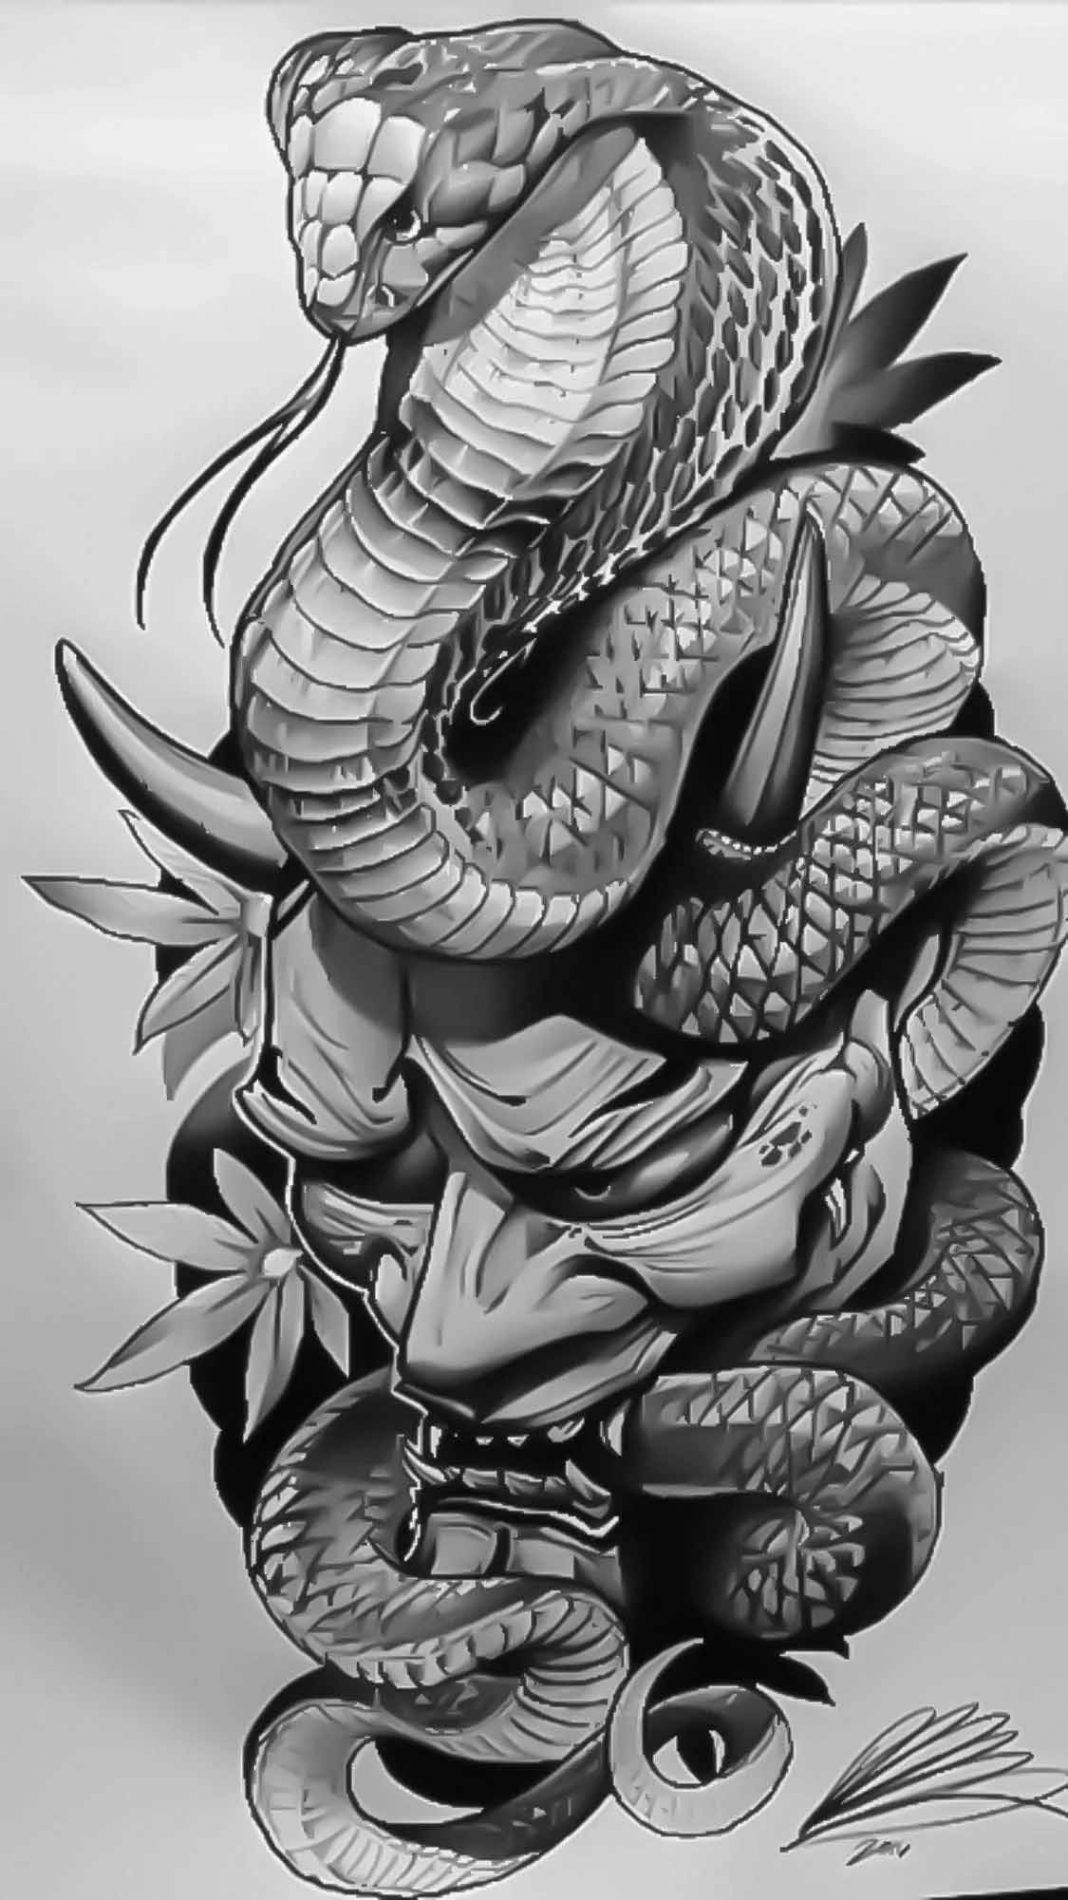 Exclusive Designs For Tattoos In 2020 Snake Tattoo Design Japanese Snake Tattoo Japan Tattoo Design